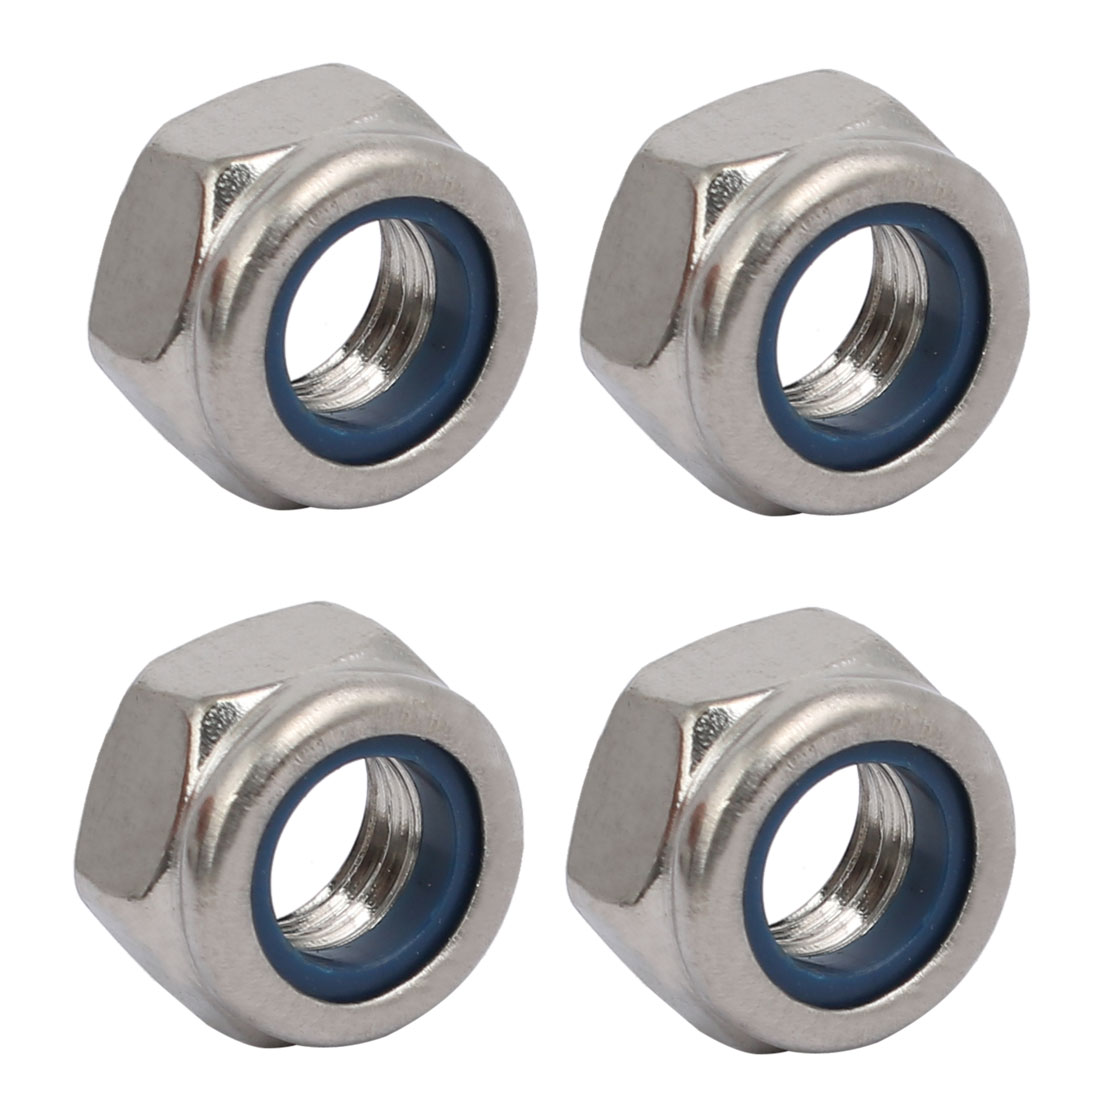 4pcs M8 x 1.25mm Pitch Metric Thread 304 Stainless Steel Left Hand Lock Nuts